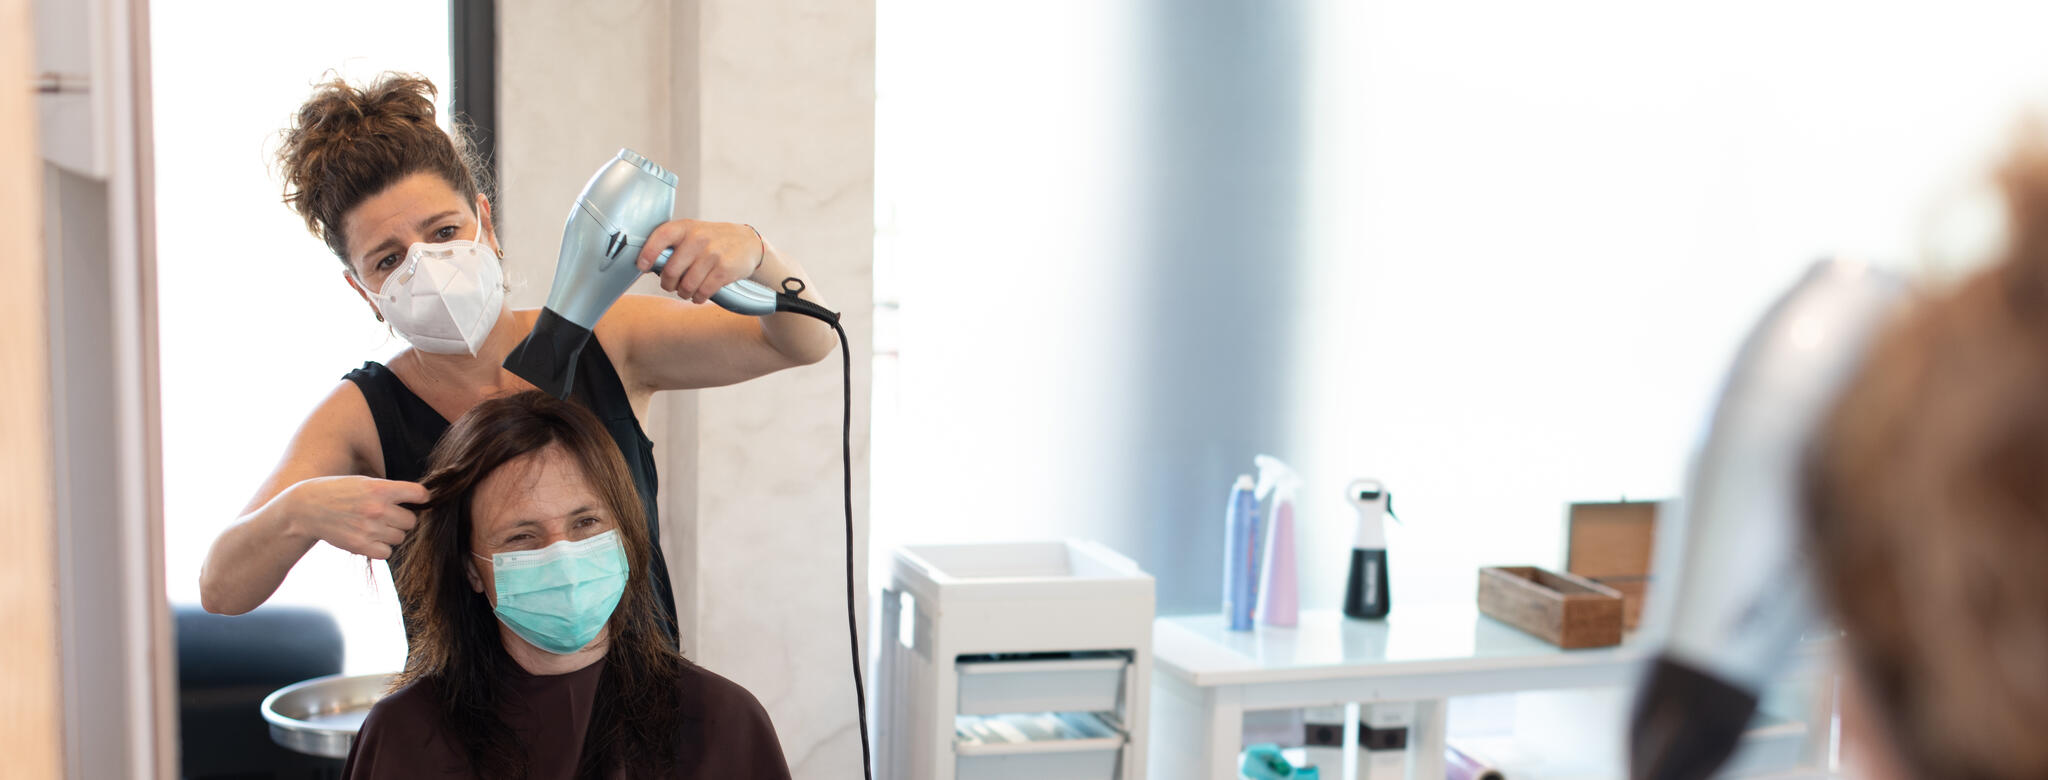 Hair stylist wearing a mask while blow drying hair